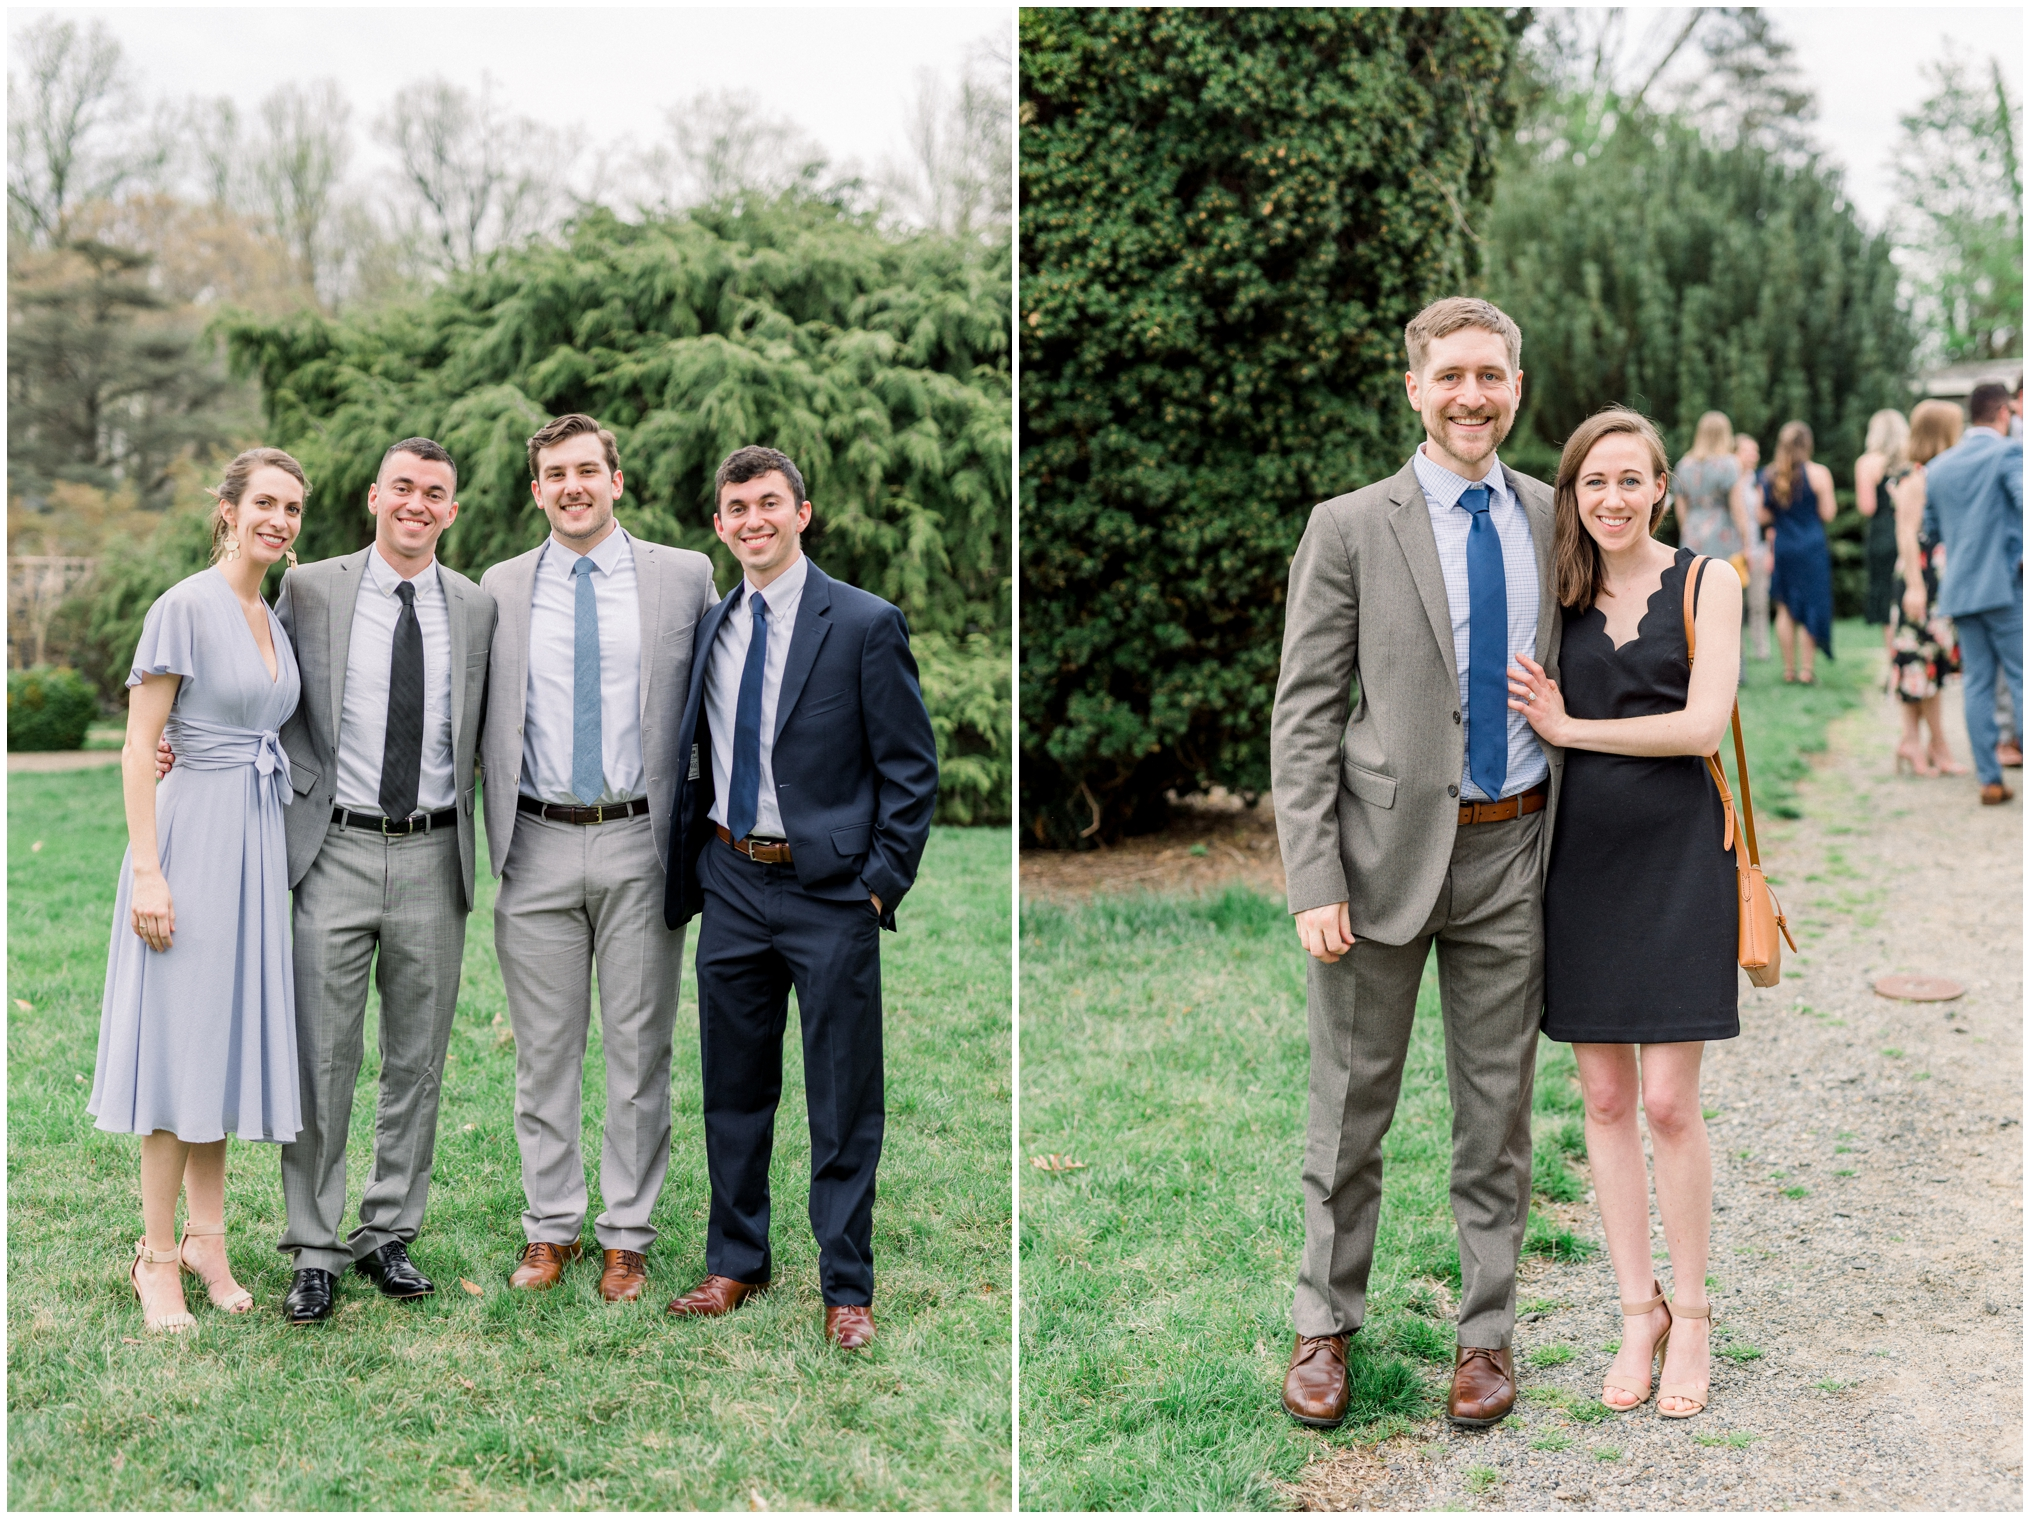 Krista Brackin Photography | April Wedding at The Carriage House at Rockwood Park_0094.jpg